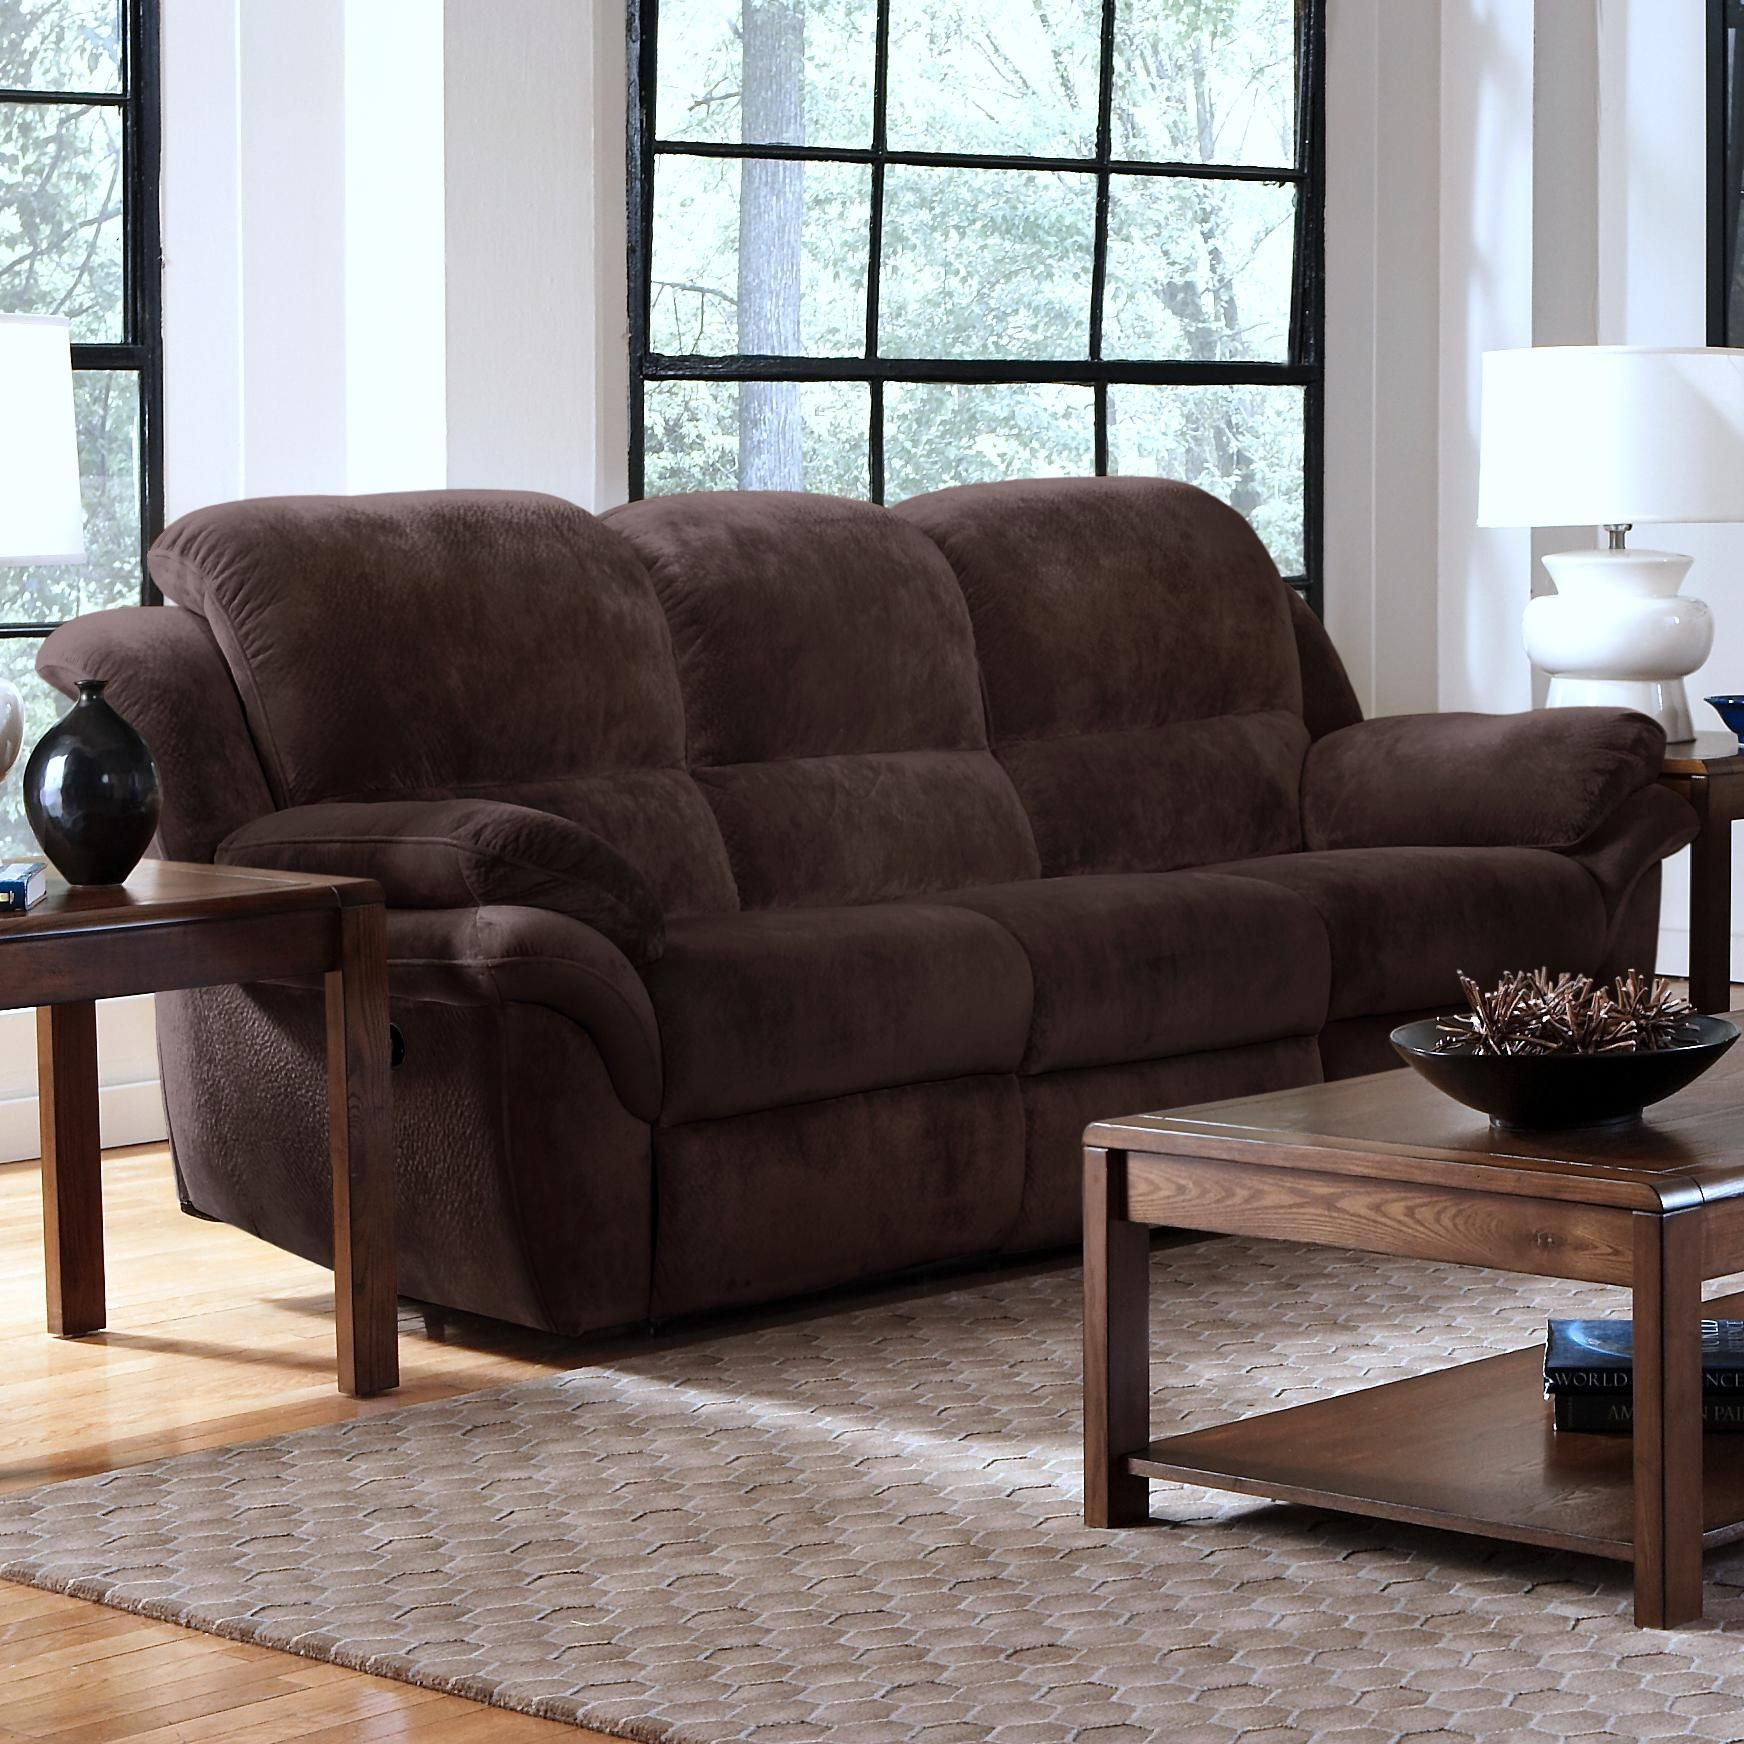 Pebble Power Reclining Sofa By New Classic Sofa New Classic